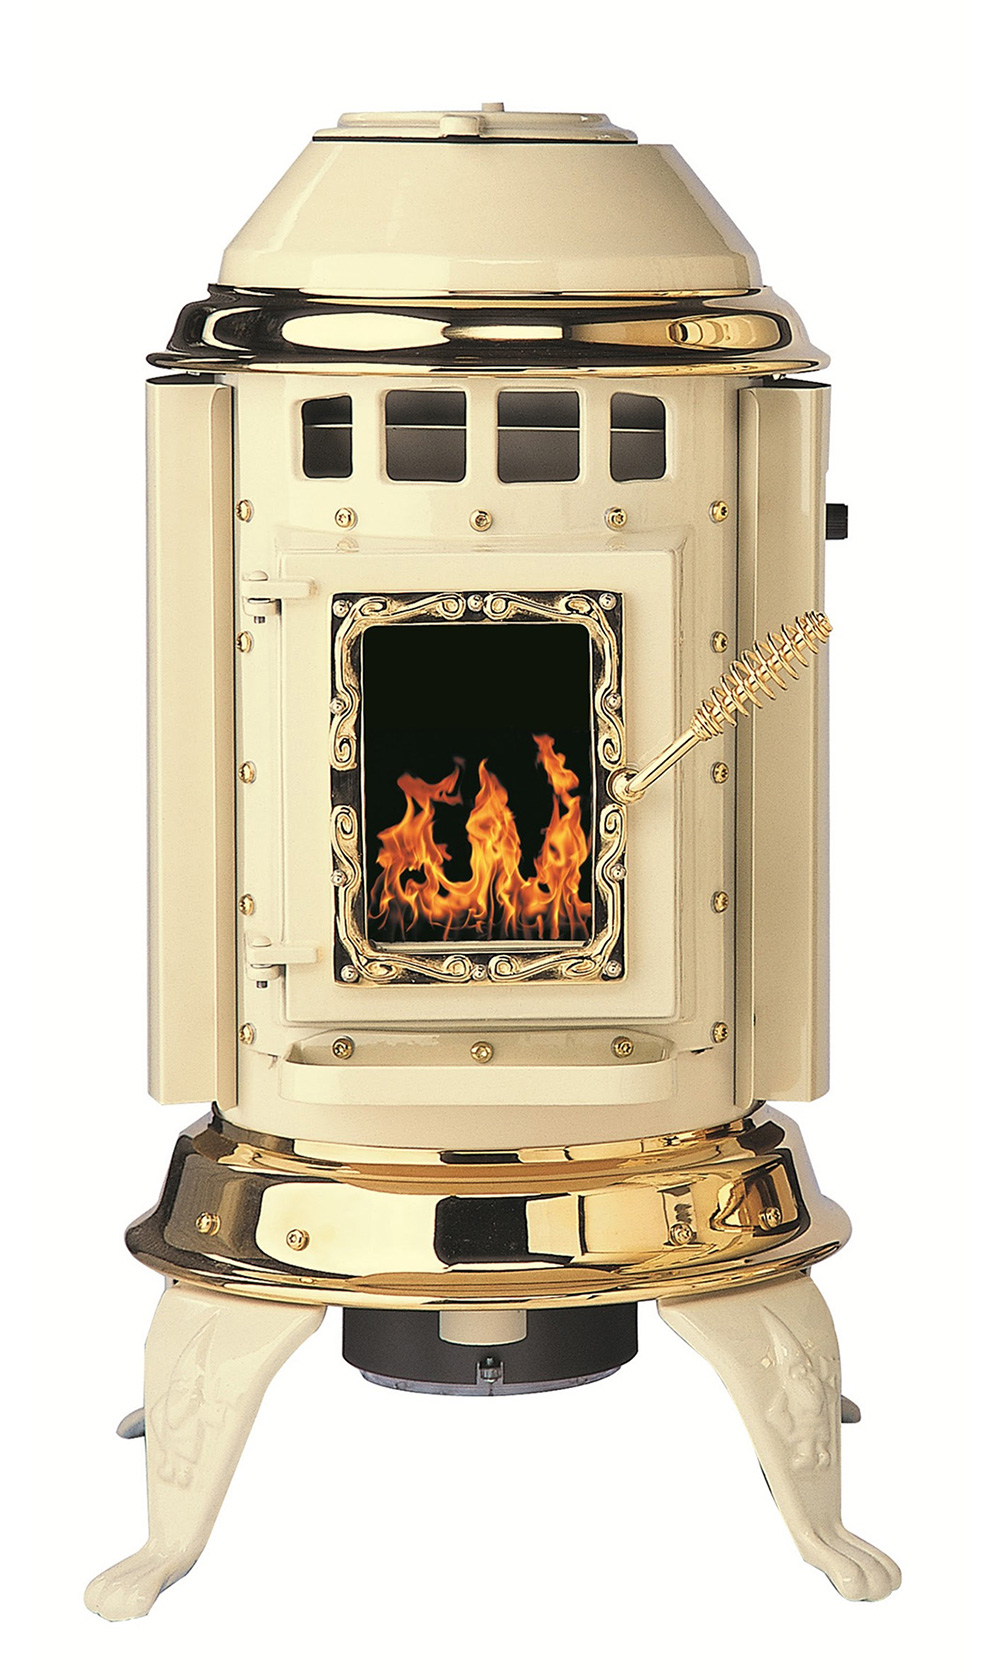 Gnome pellet stove from thelin hearth products - Pellet stoves for small spaces set ...